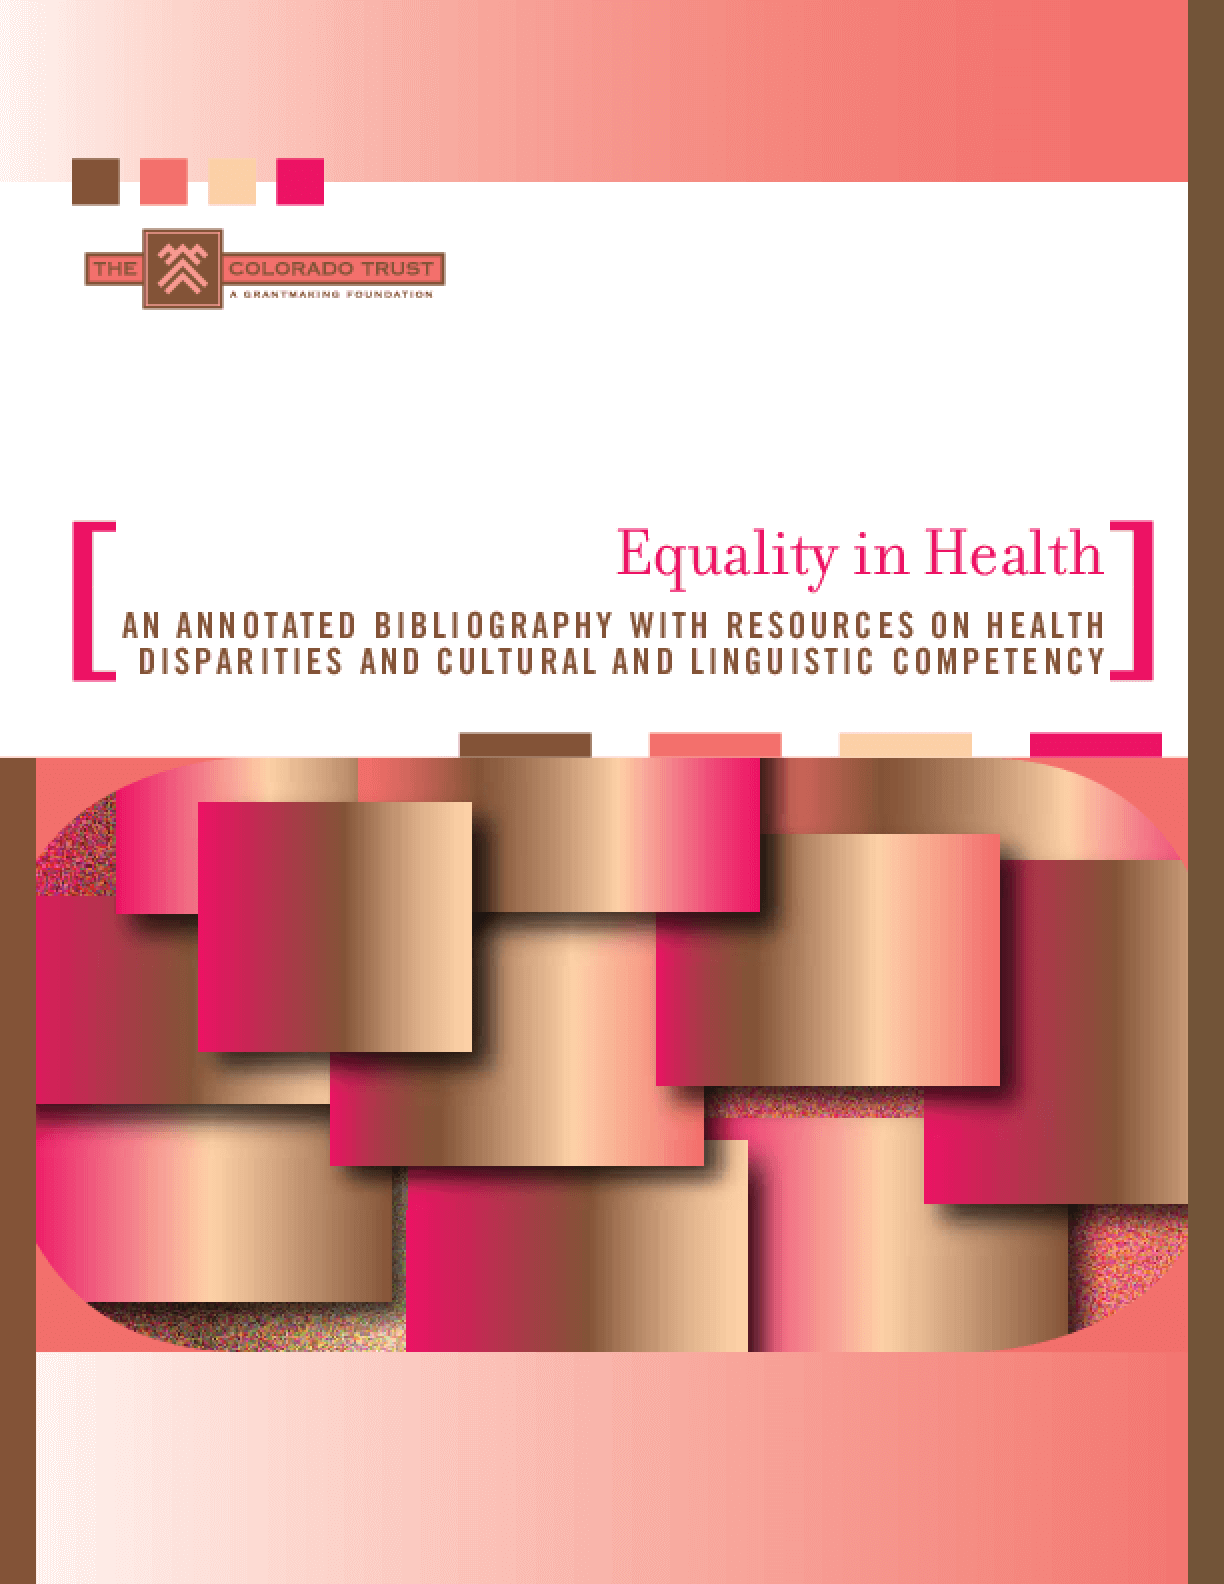 Equality in Health: An Annotated Bibliography With Resources on Health Disparities and Cultural and Linguistic Competency